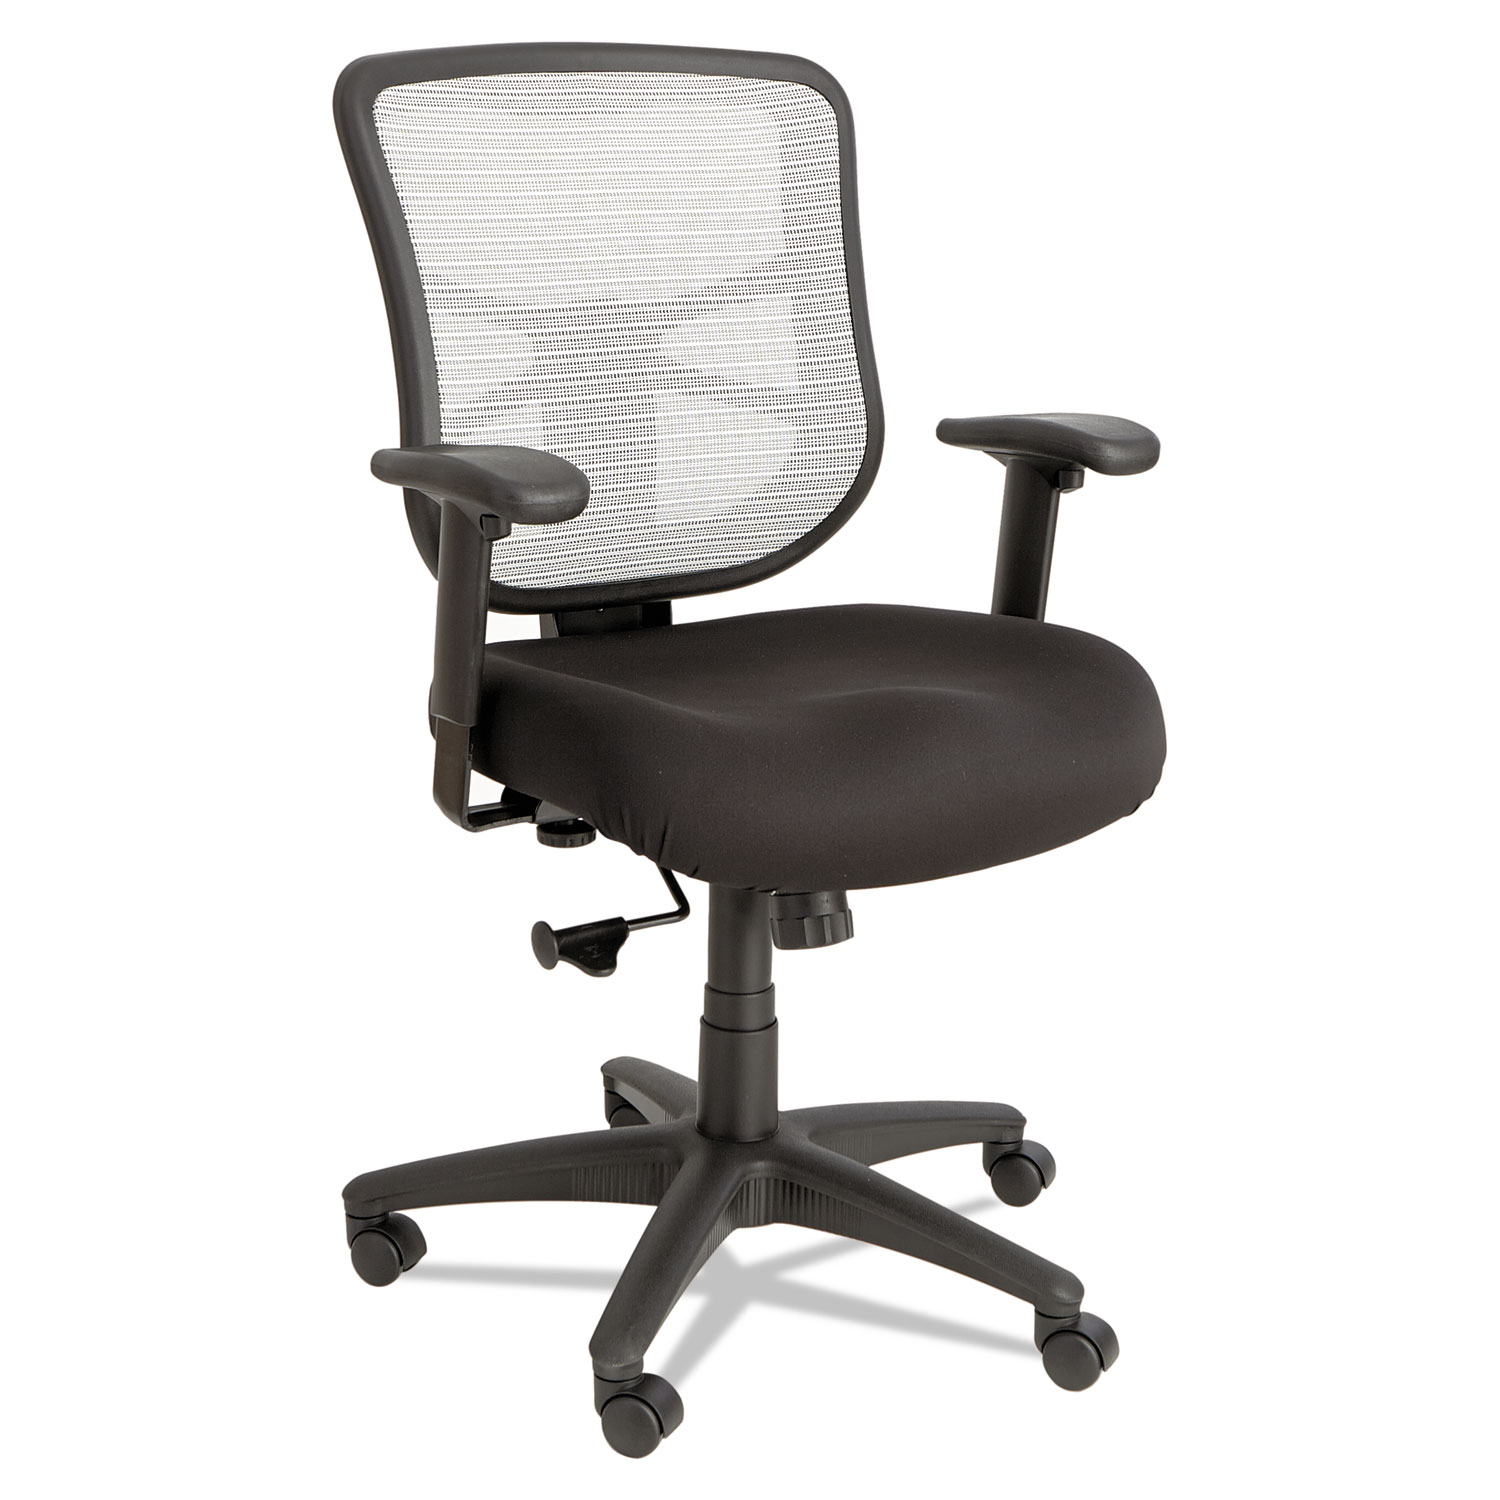 Back Supports For Chairs Alera Elusion Series Mesh Mid Back Swivel Tilt Chair Supports Up To 275 Lbs Black Seat White Back Black Base